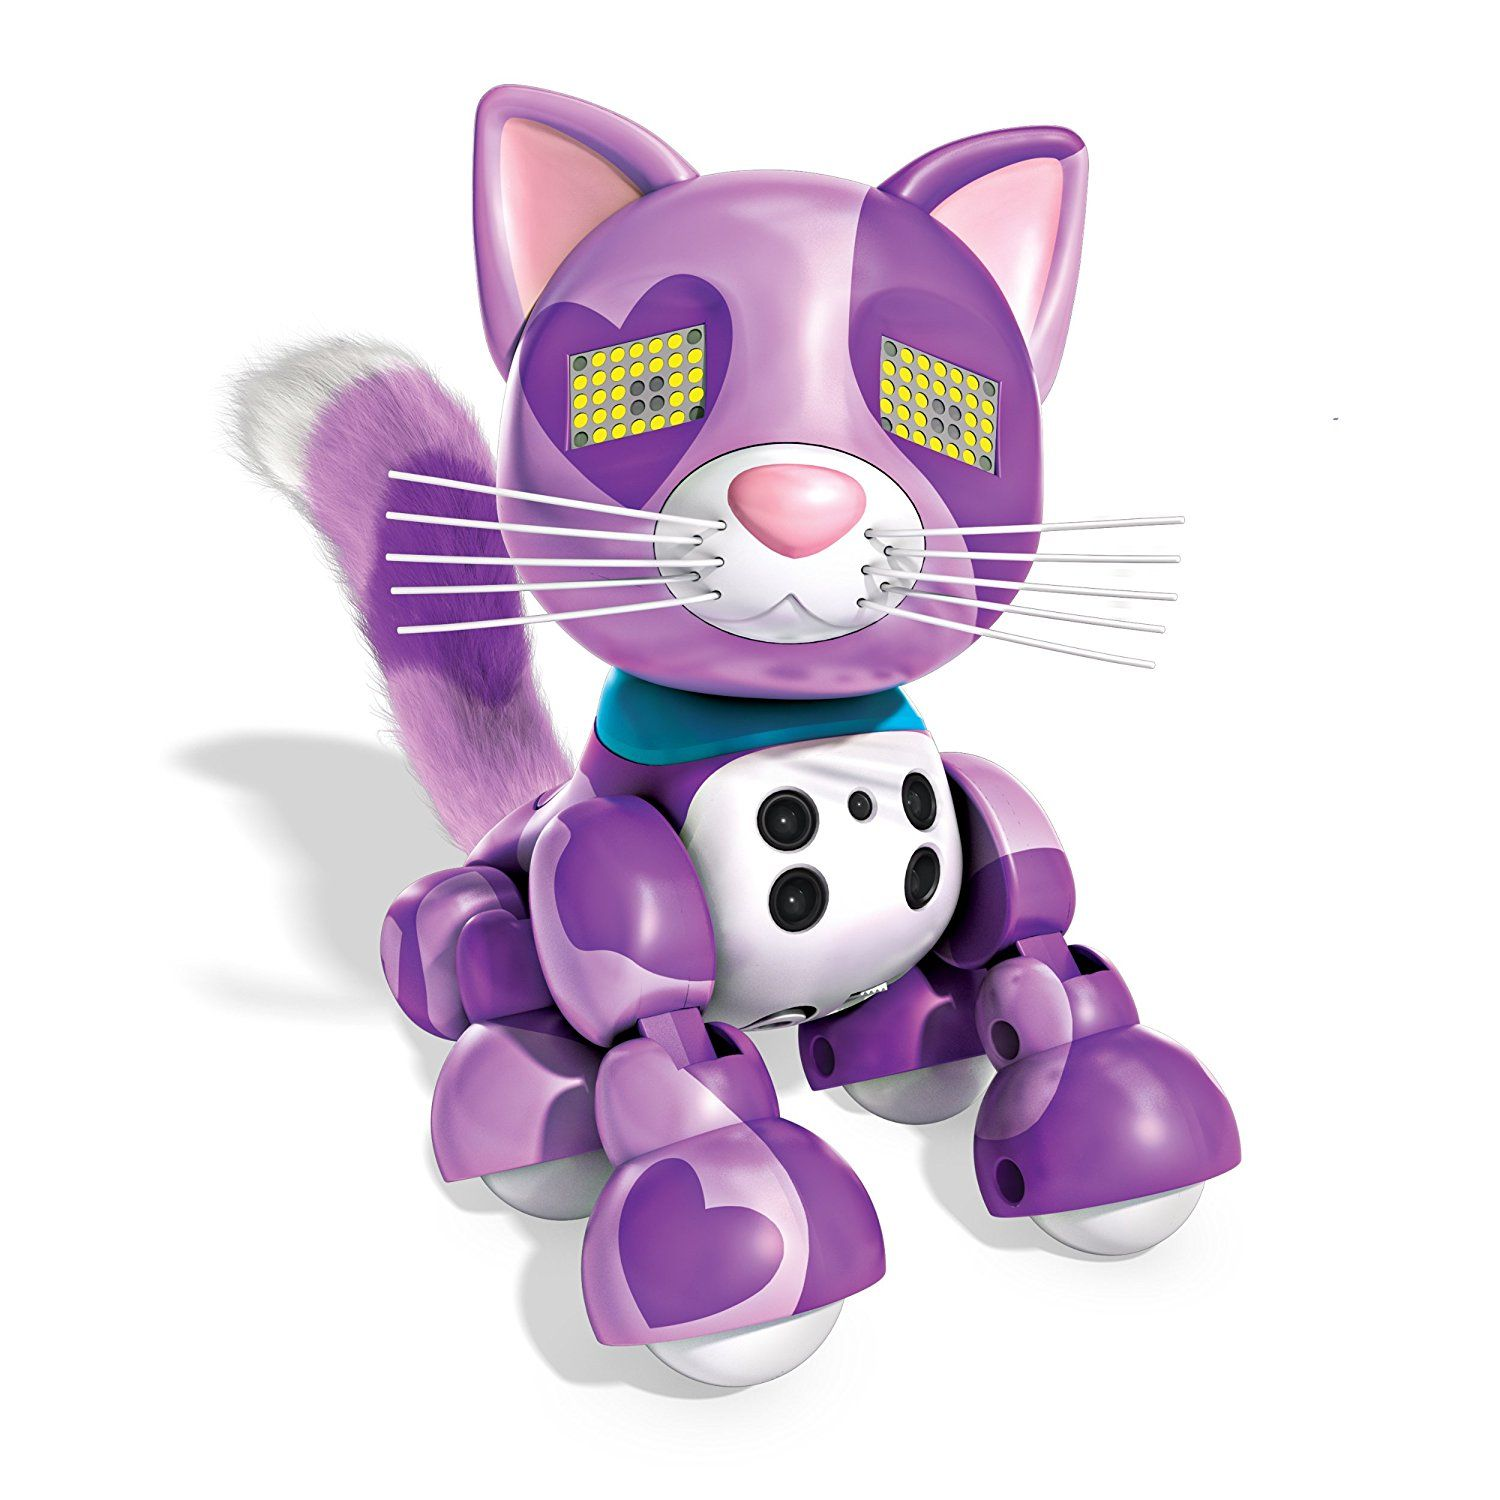 Tara Amazon Com Zoomer Meowzies Viola Interactive Kitten With Lights Sounds And Sensors By Spin Master Toys Games Robot Cat Kittens Robot Cat Toy